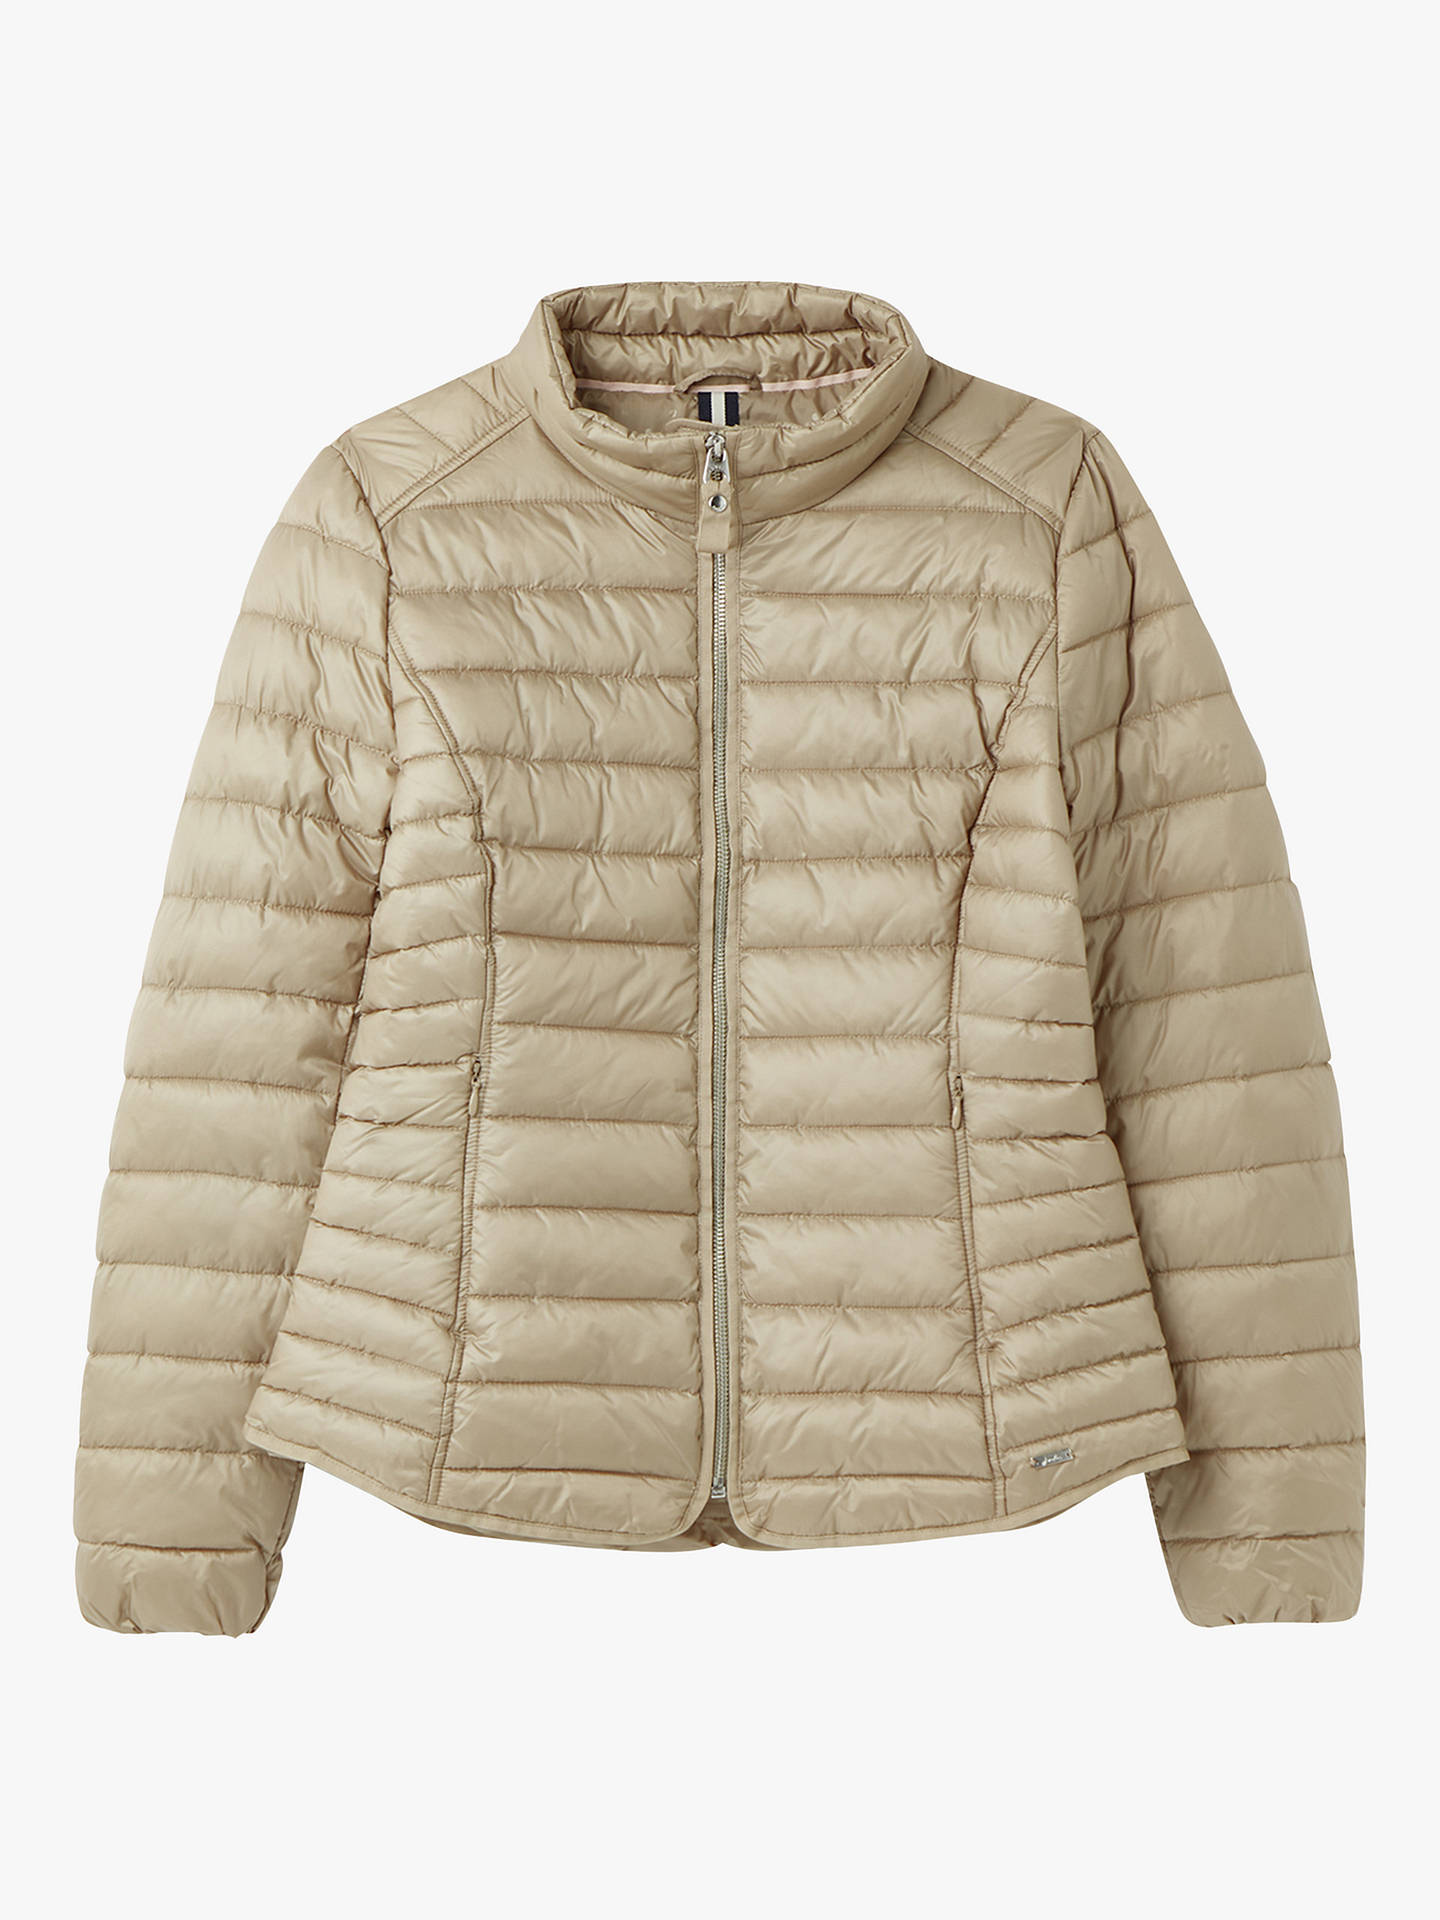 Buy Joules Canterbury Padded Jacket, Metallic Beige, 16 Online at johnlewis.com